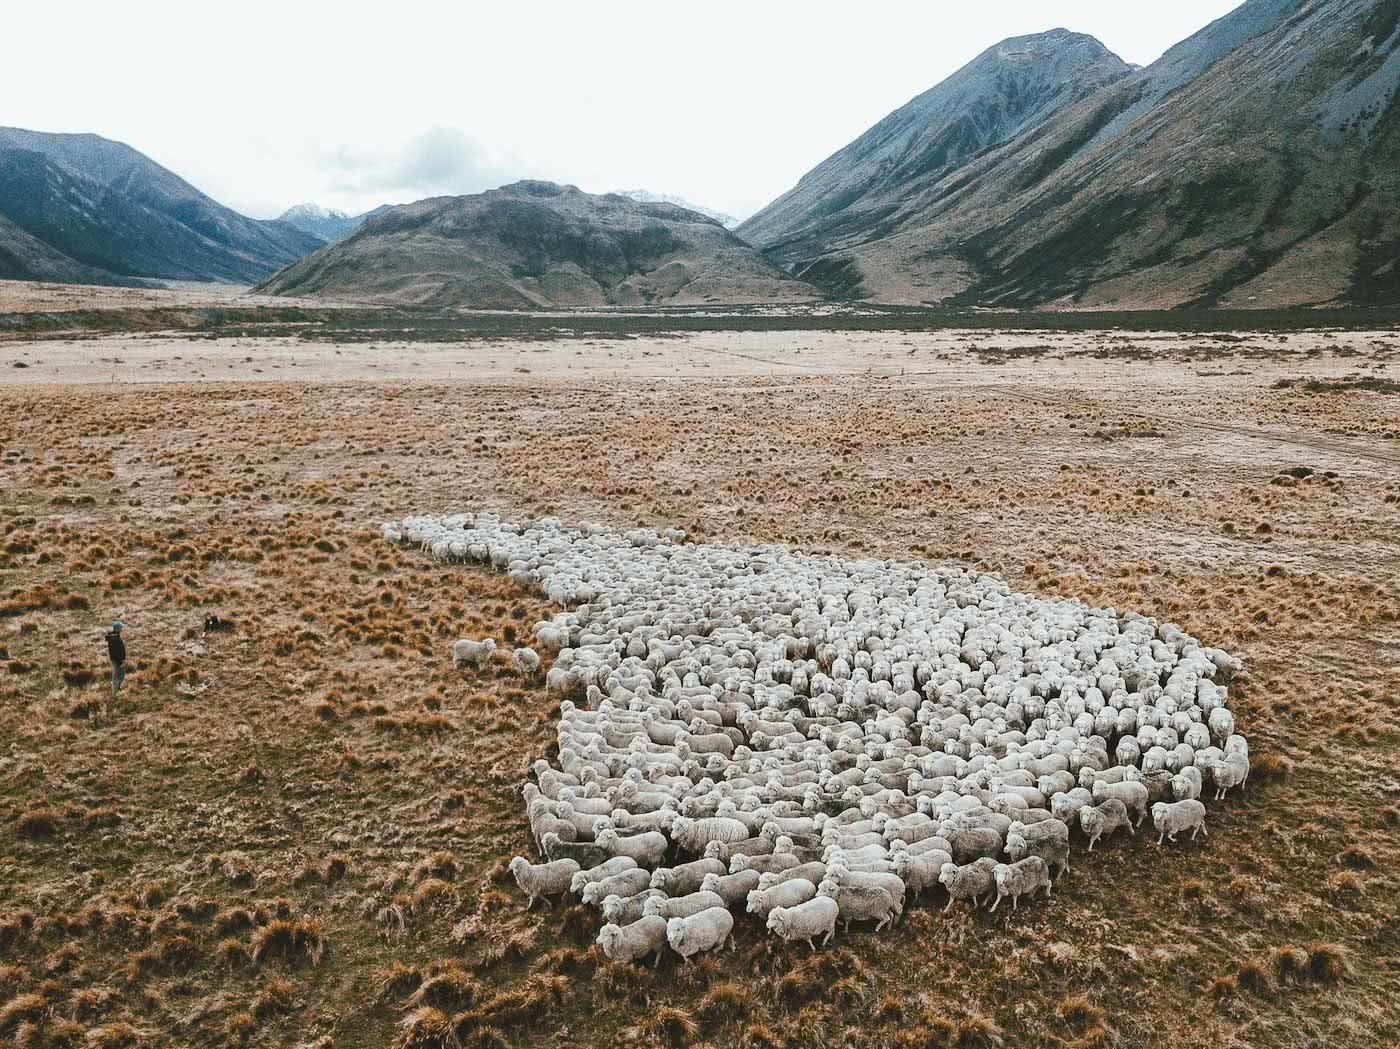 What's Life Like On A Wild South Island Merino Farm?, Photo by Joe Leep, merino, icebreaker, nz, lake heron station, sheep, aerial